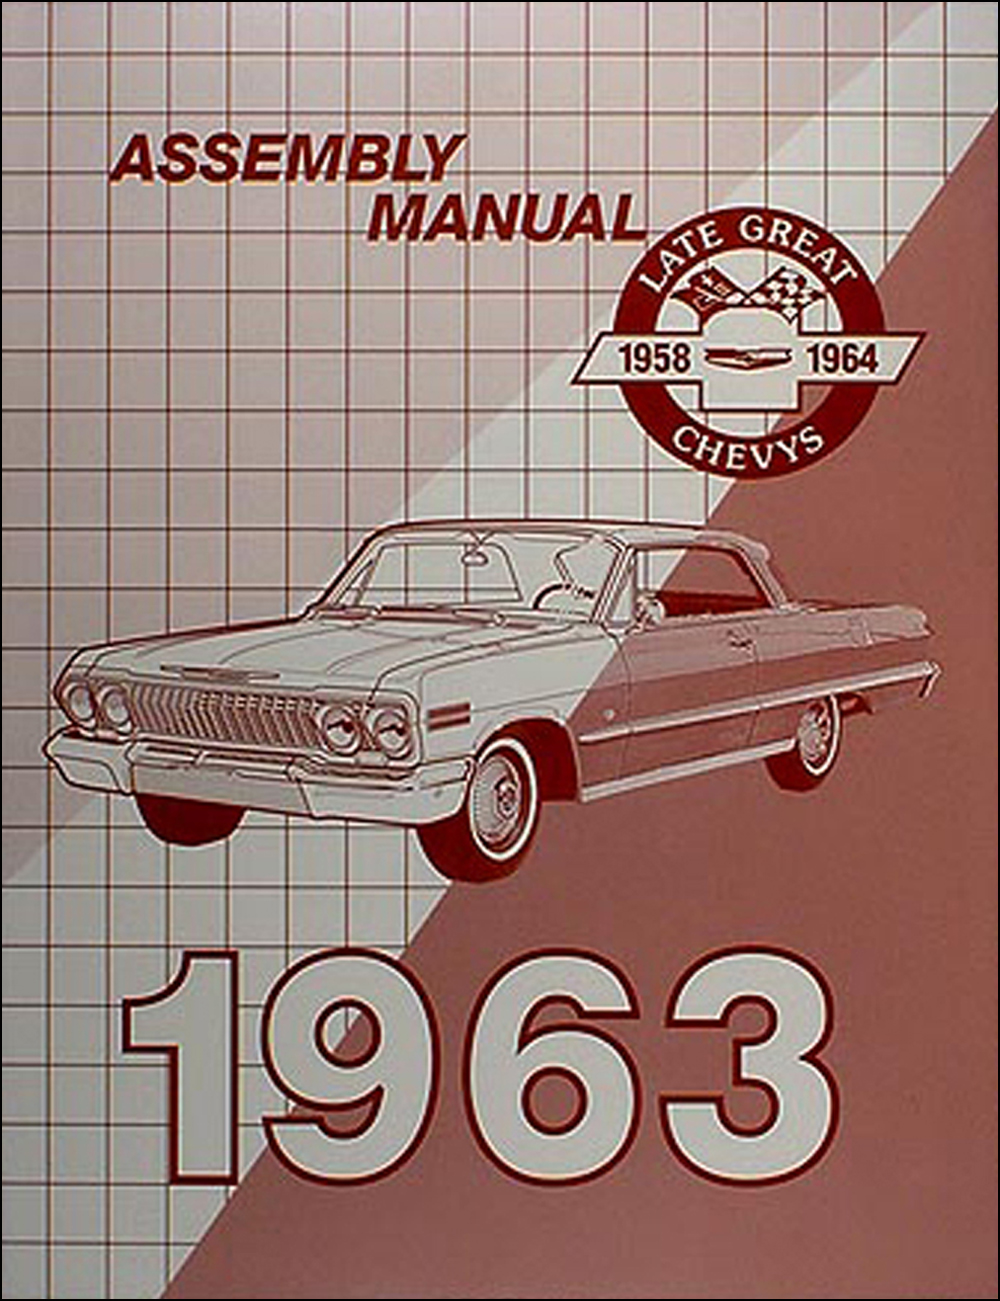 medium resolution of 1963 chevrolet assembly manual reprint biscayne bel air impala ss1963 chevy wiring diagram manual reprint